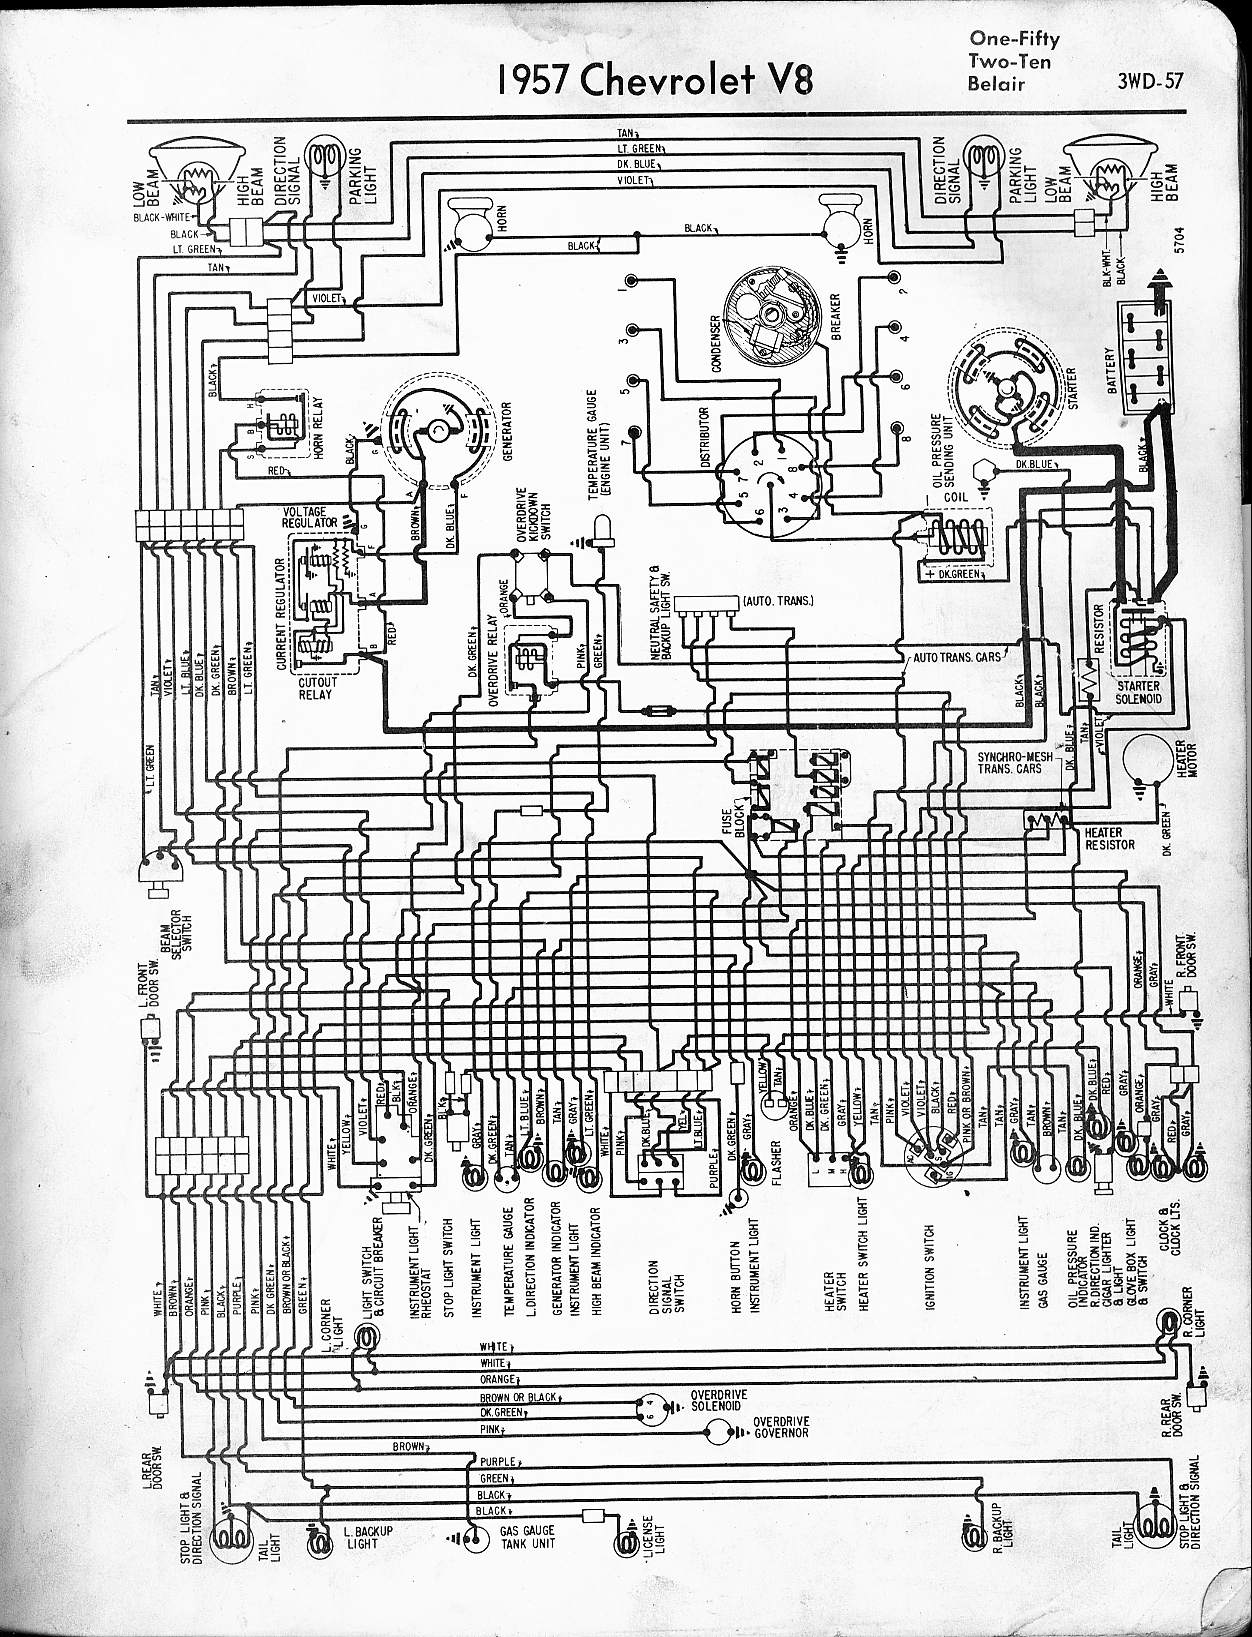 wiring diagram 57 chevy bel air opinions about wiring diagram u2022 rh  voterid co 1957 chevy bel air fuse box location 1957 chevy bel air fuse box  diagram